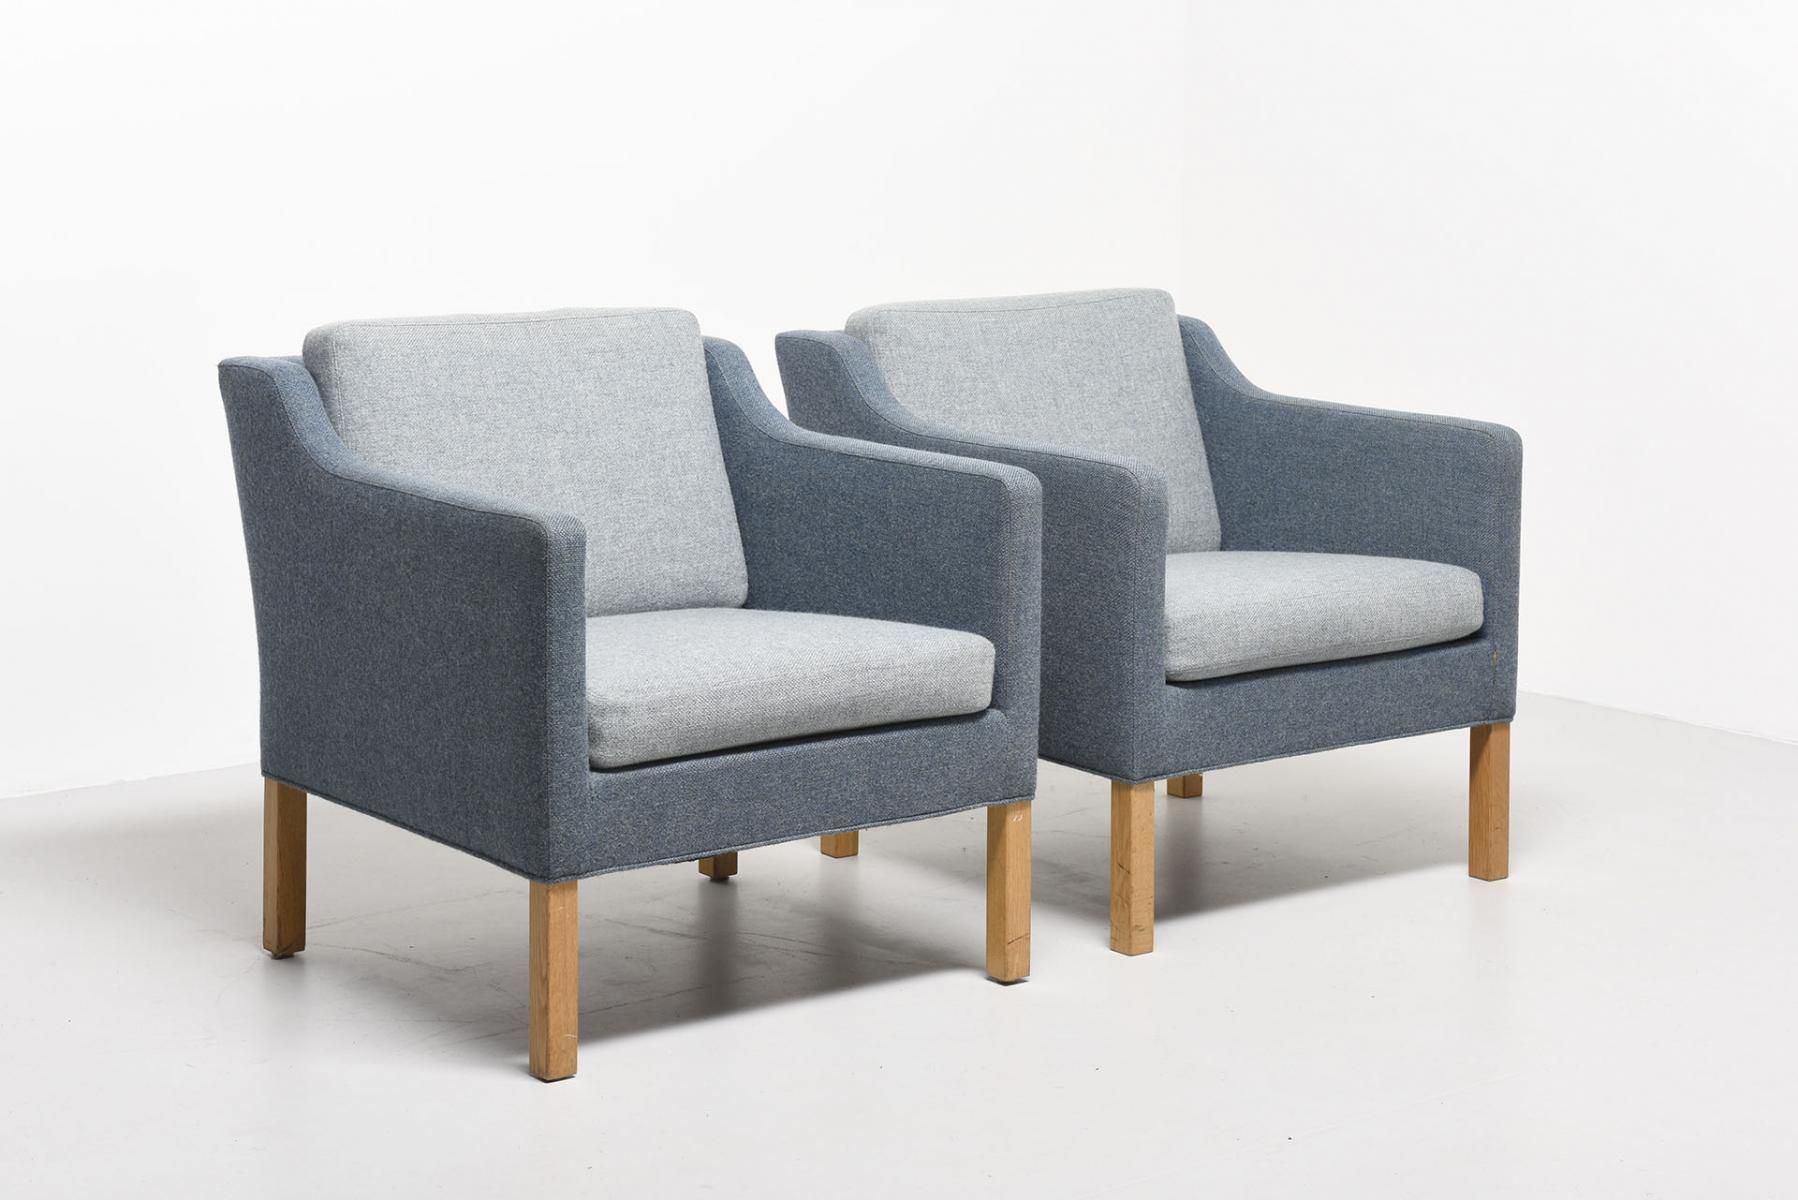 Vintage Model 2521 Blue Easy Chair By Børge Mogensen For Fredericia 2 Borgemogensen Blue Easy Chair Mid Century Style Furniture Easy Chair